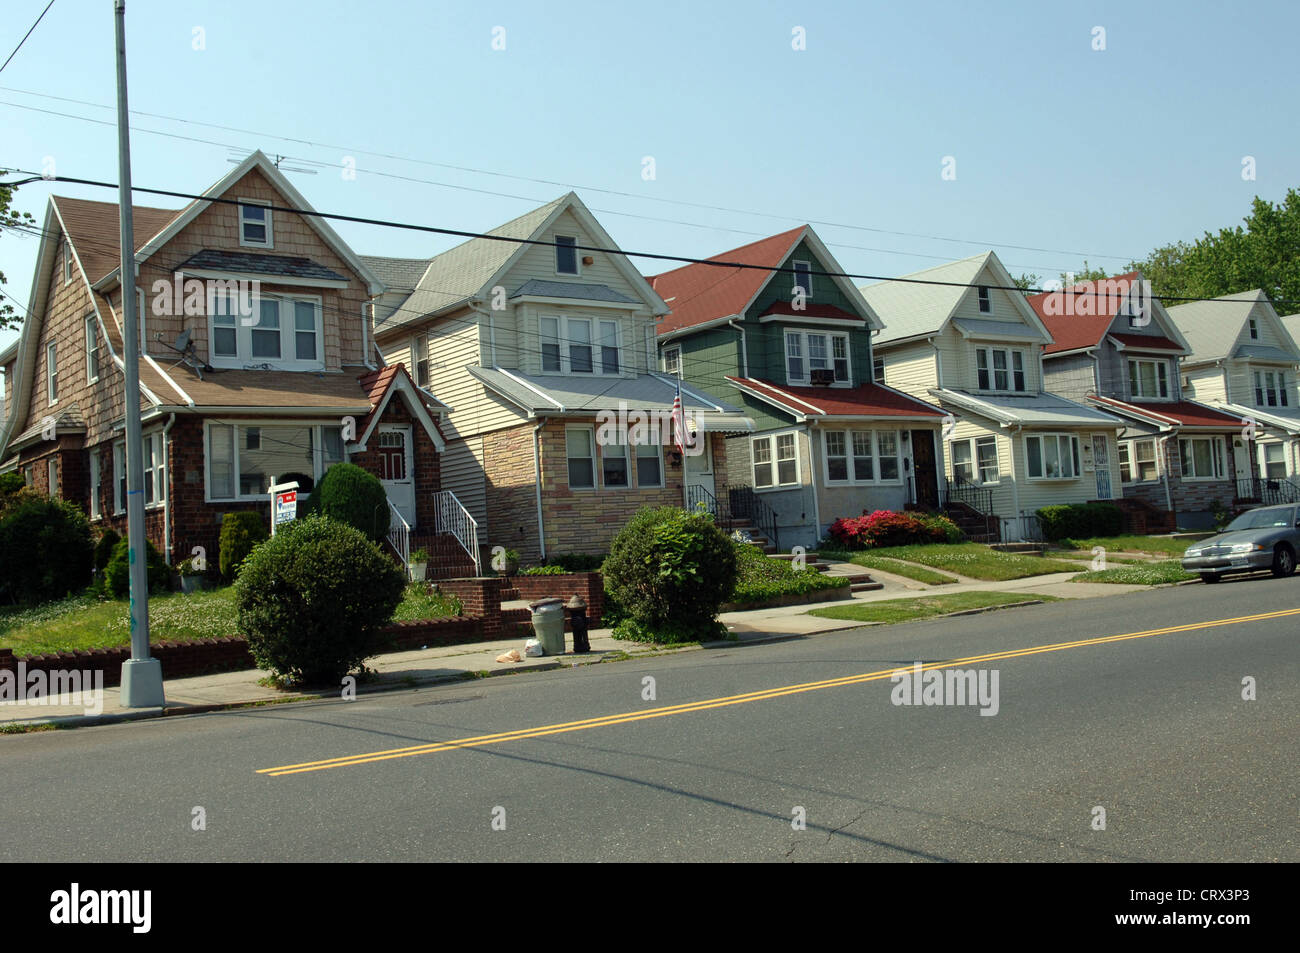 queens new york houses stockfotos queens new york houses bilder alamy. Black Bedroom Furniture Sets. Home Design Ideas